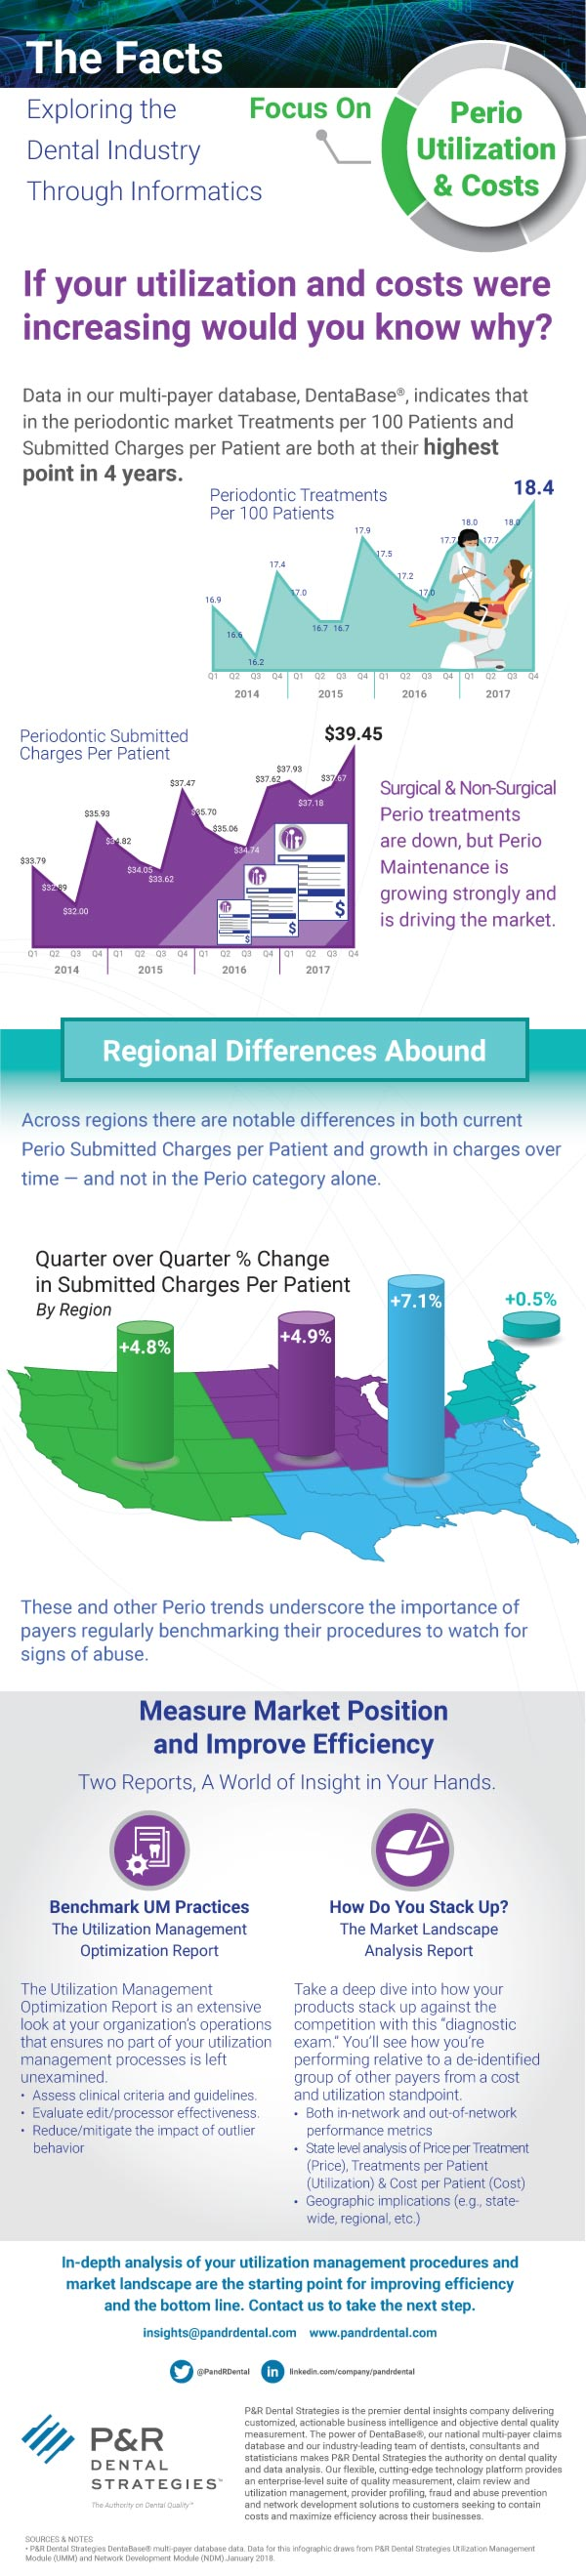 INFOGRAPHIC The Facts: Focus on Perio Utilization & Costs